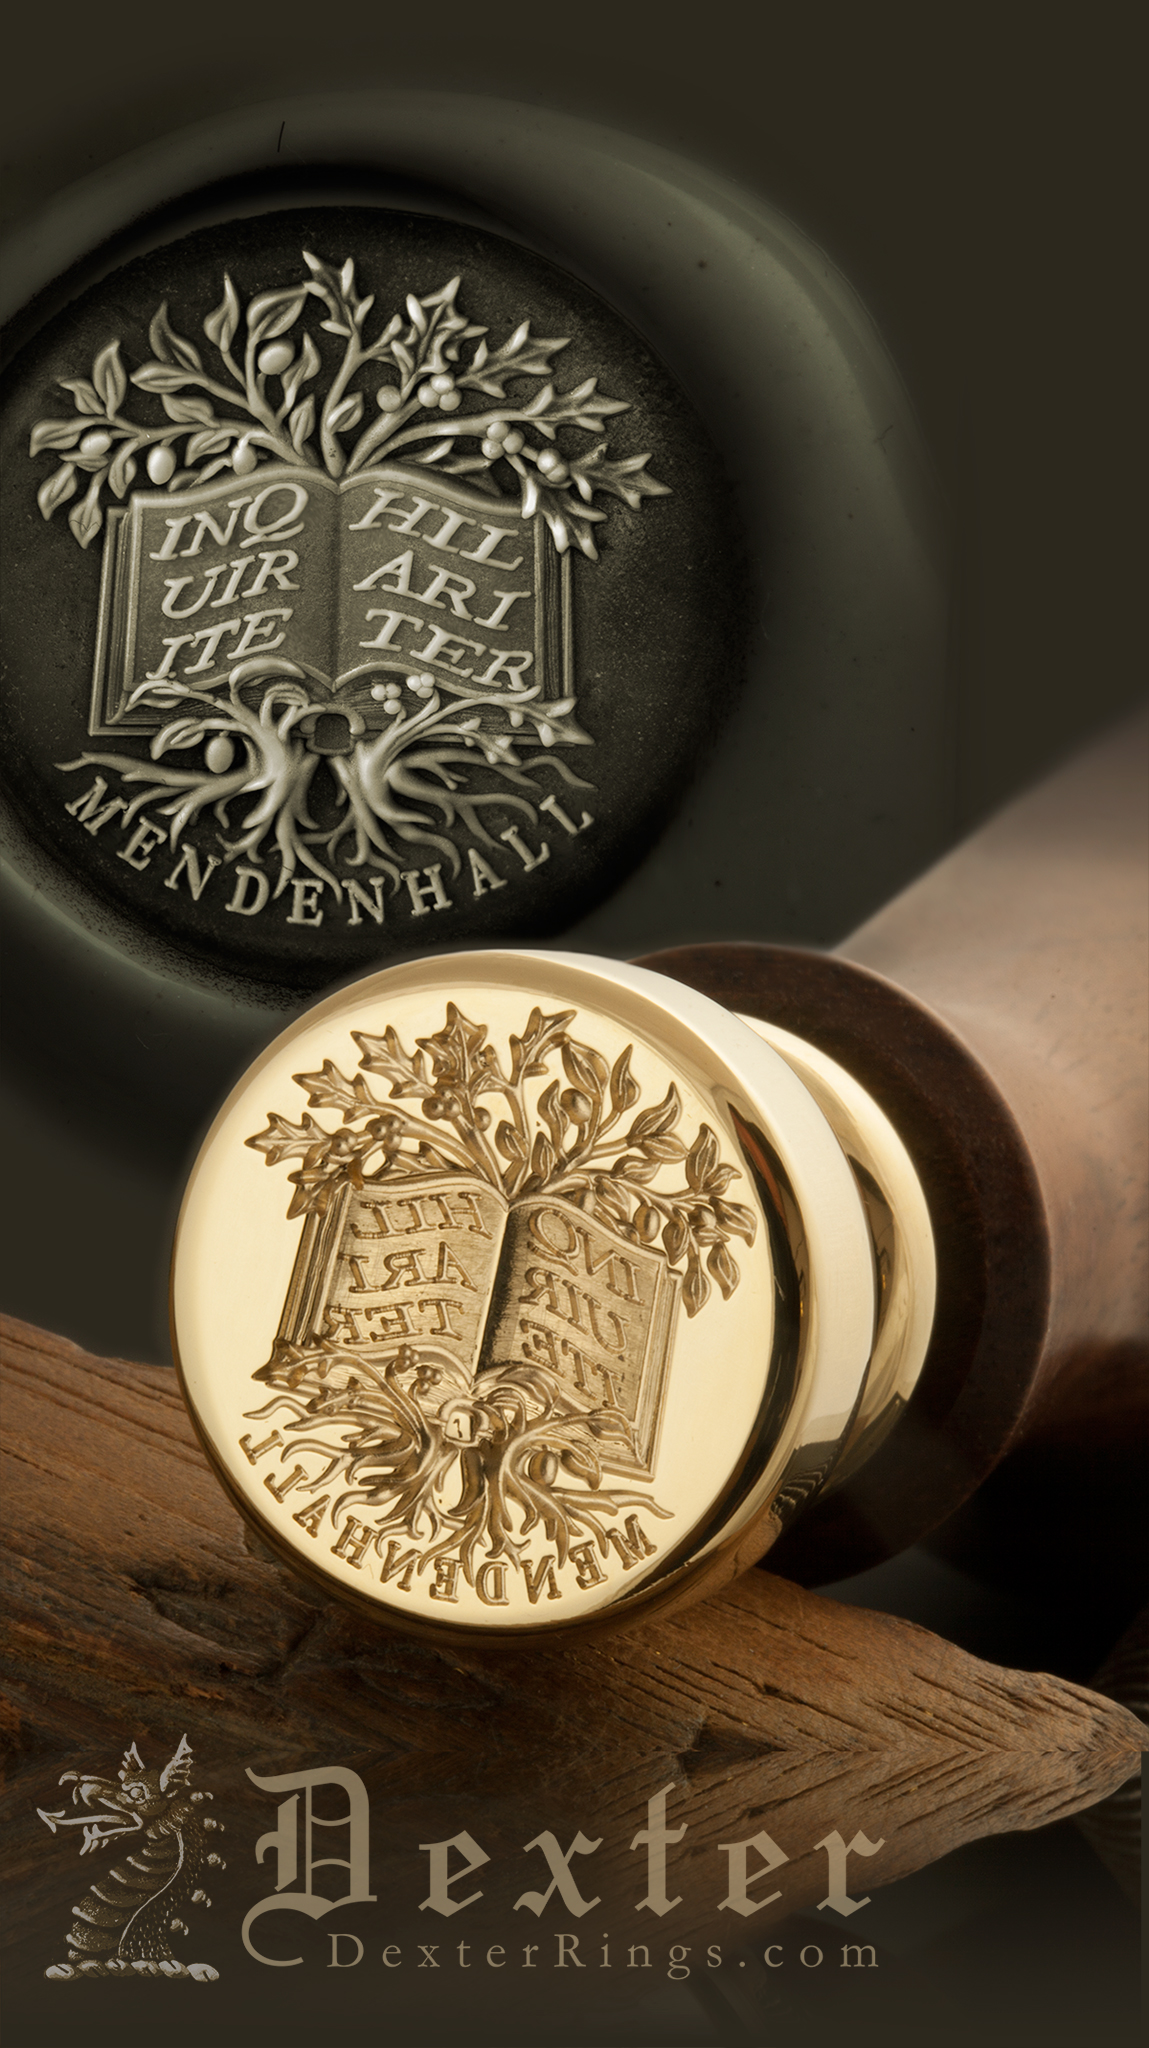 Desk Seal engraved with an ornate book and entwined trees